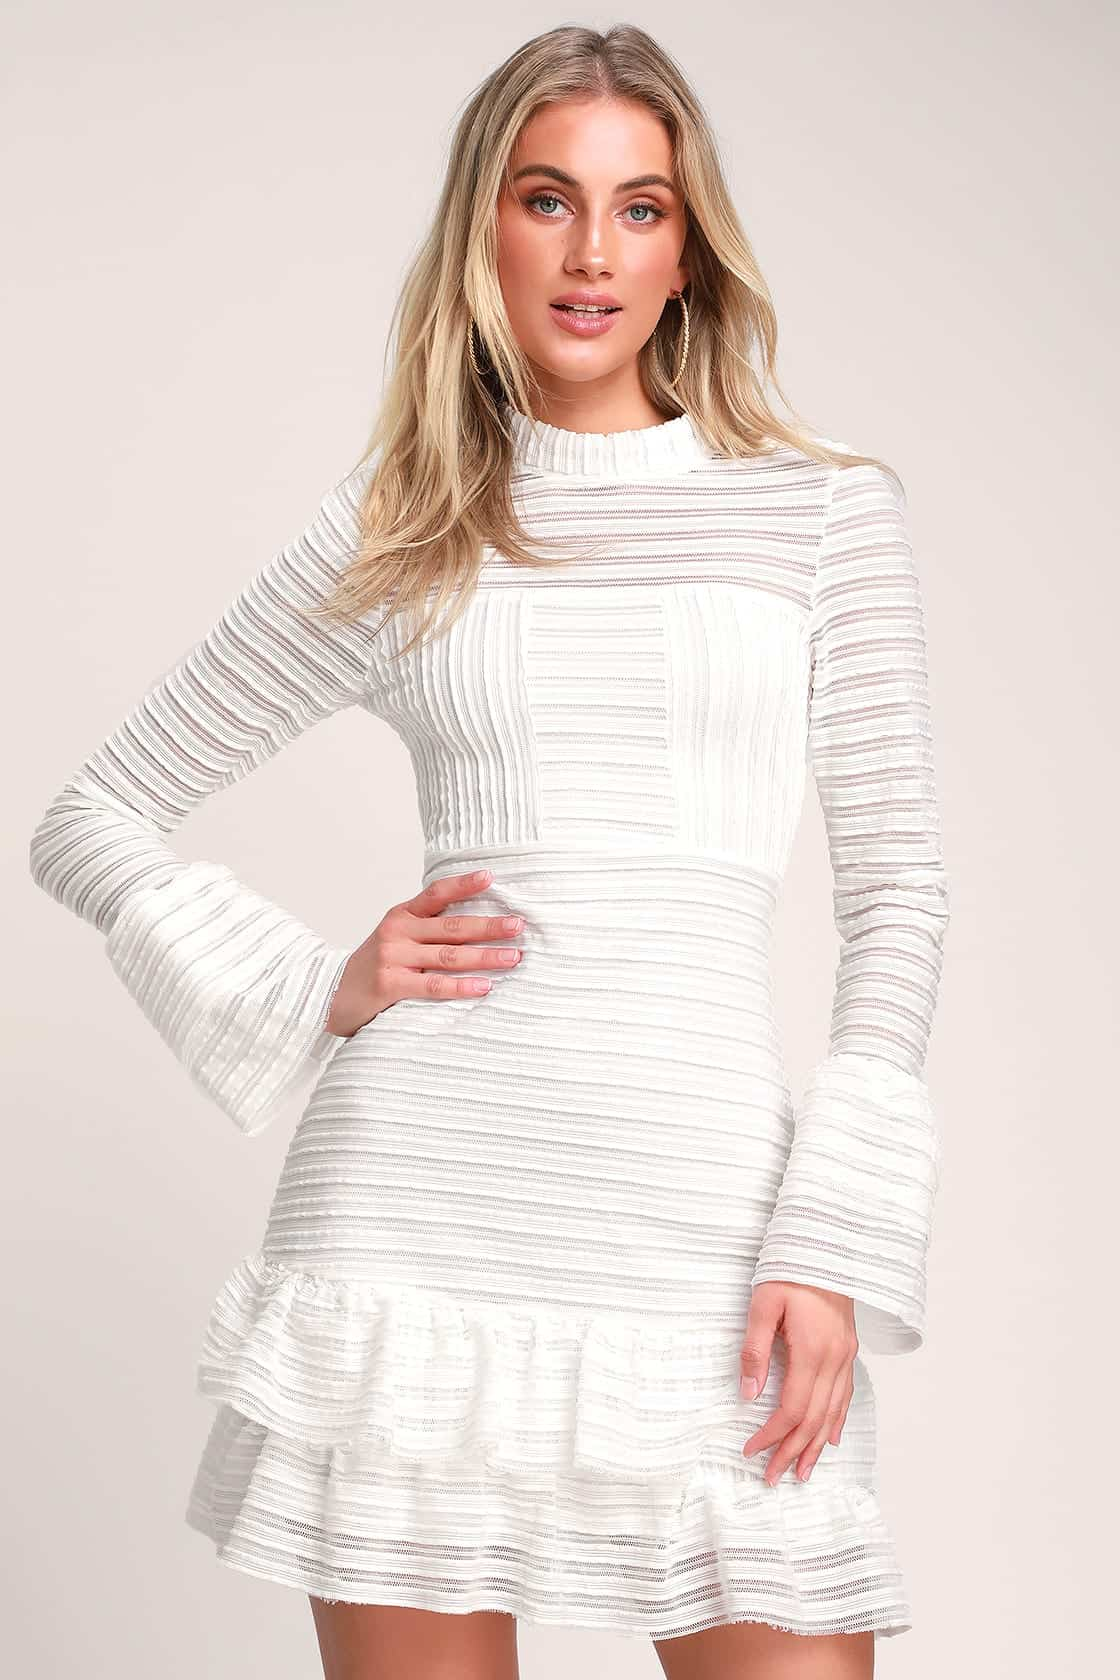 Winter Bridal Shower Dresses White Long Sleeve Cutout Dress Kitchen Tea Outfits for the Bride